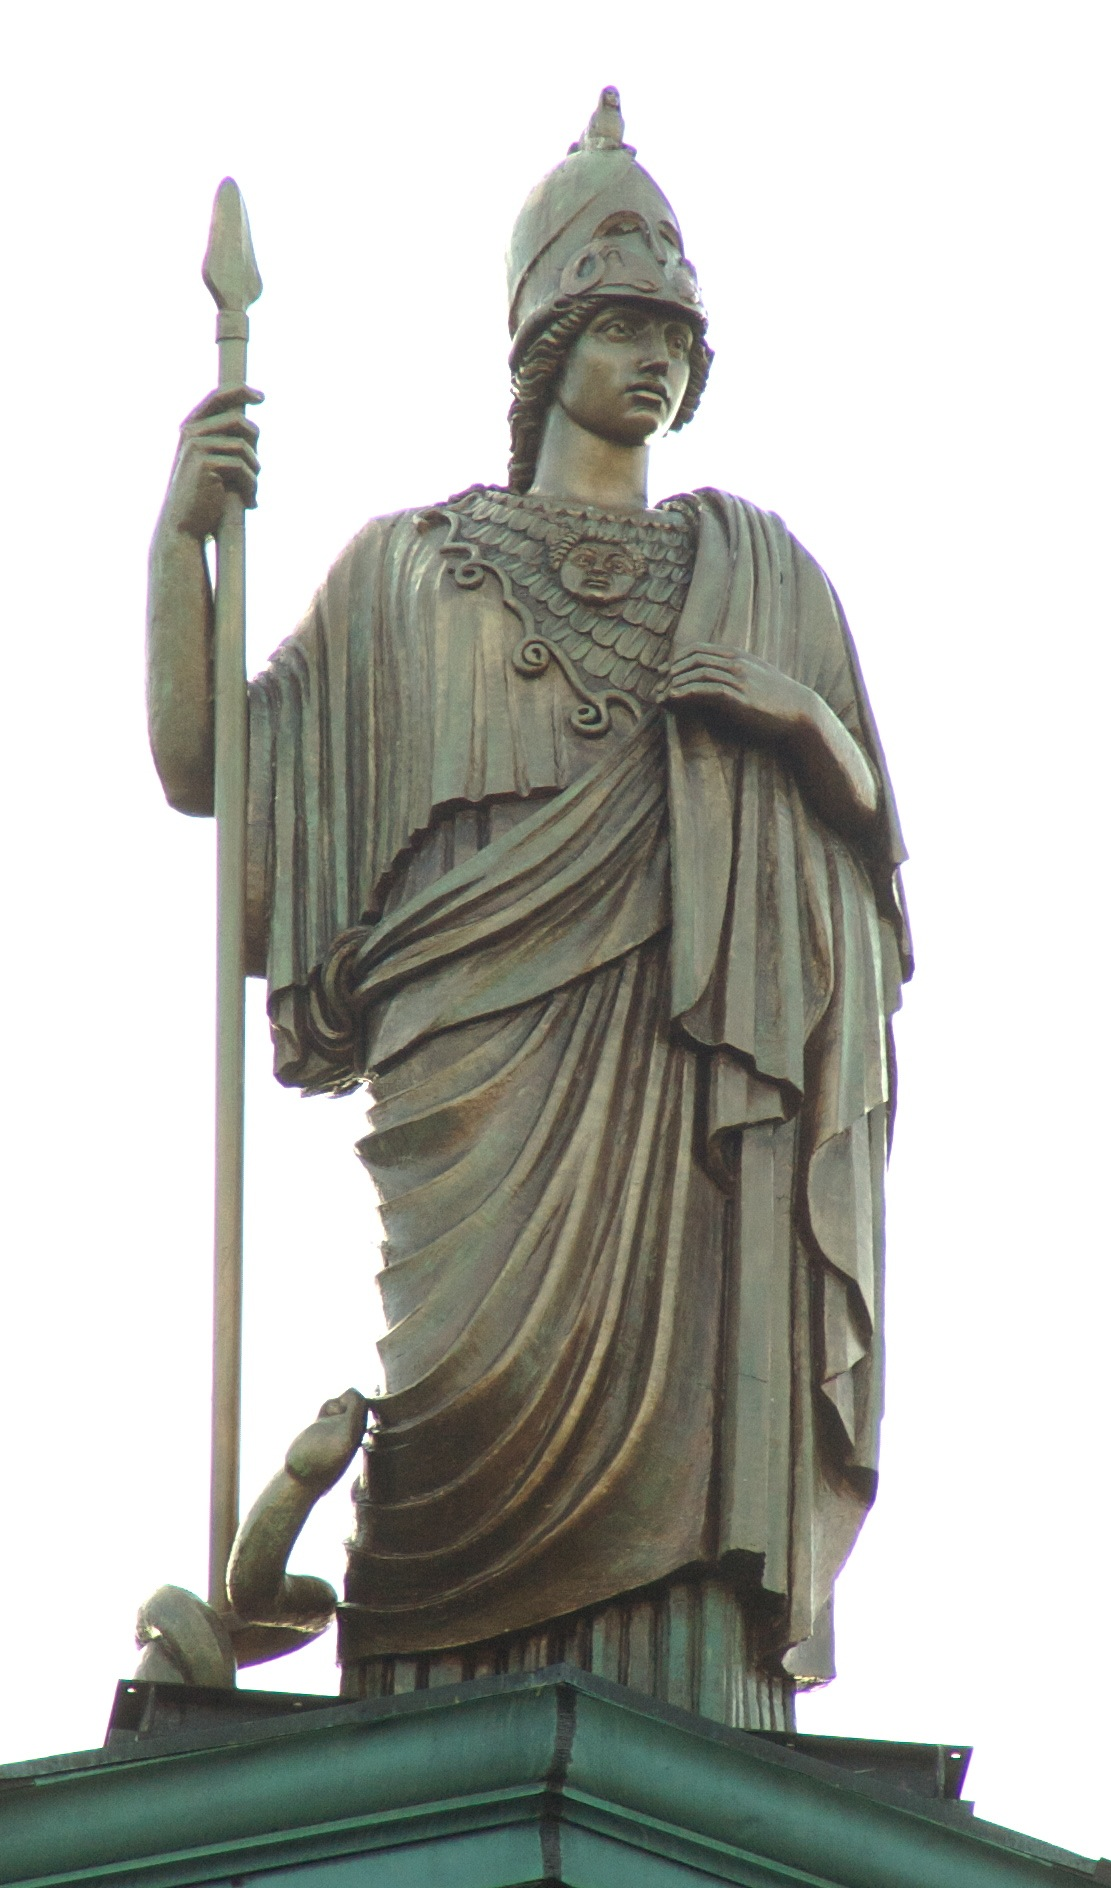 Http Commons Wikimedia Org Wiki File Athenaeum Press Statue Jpg